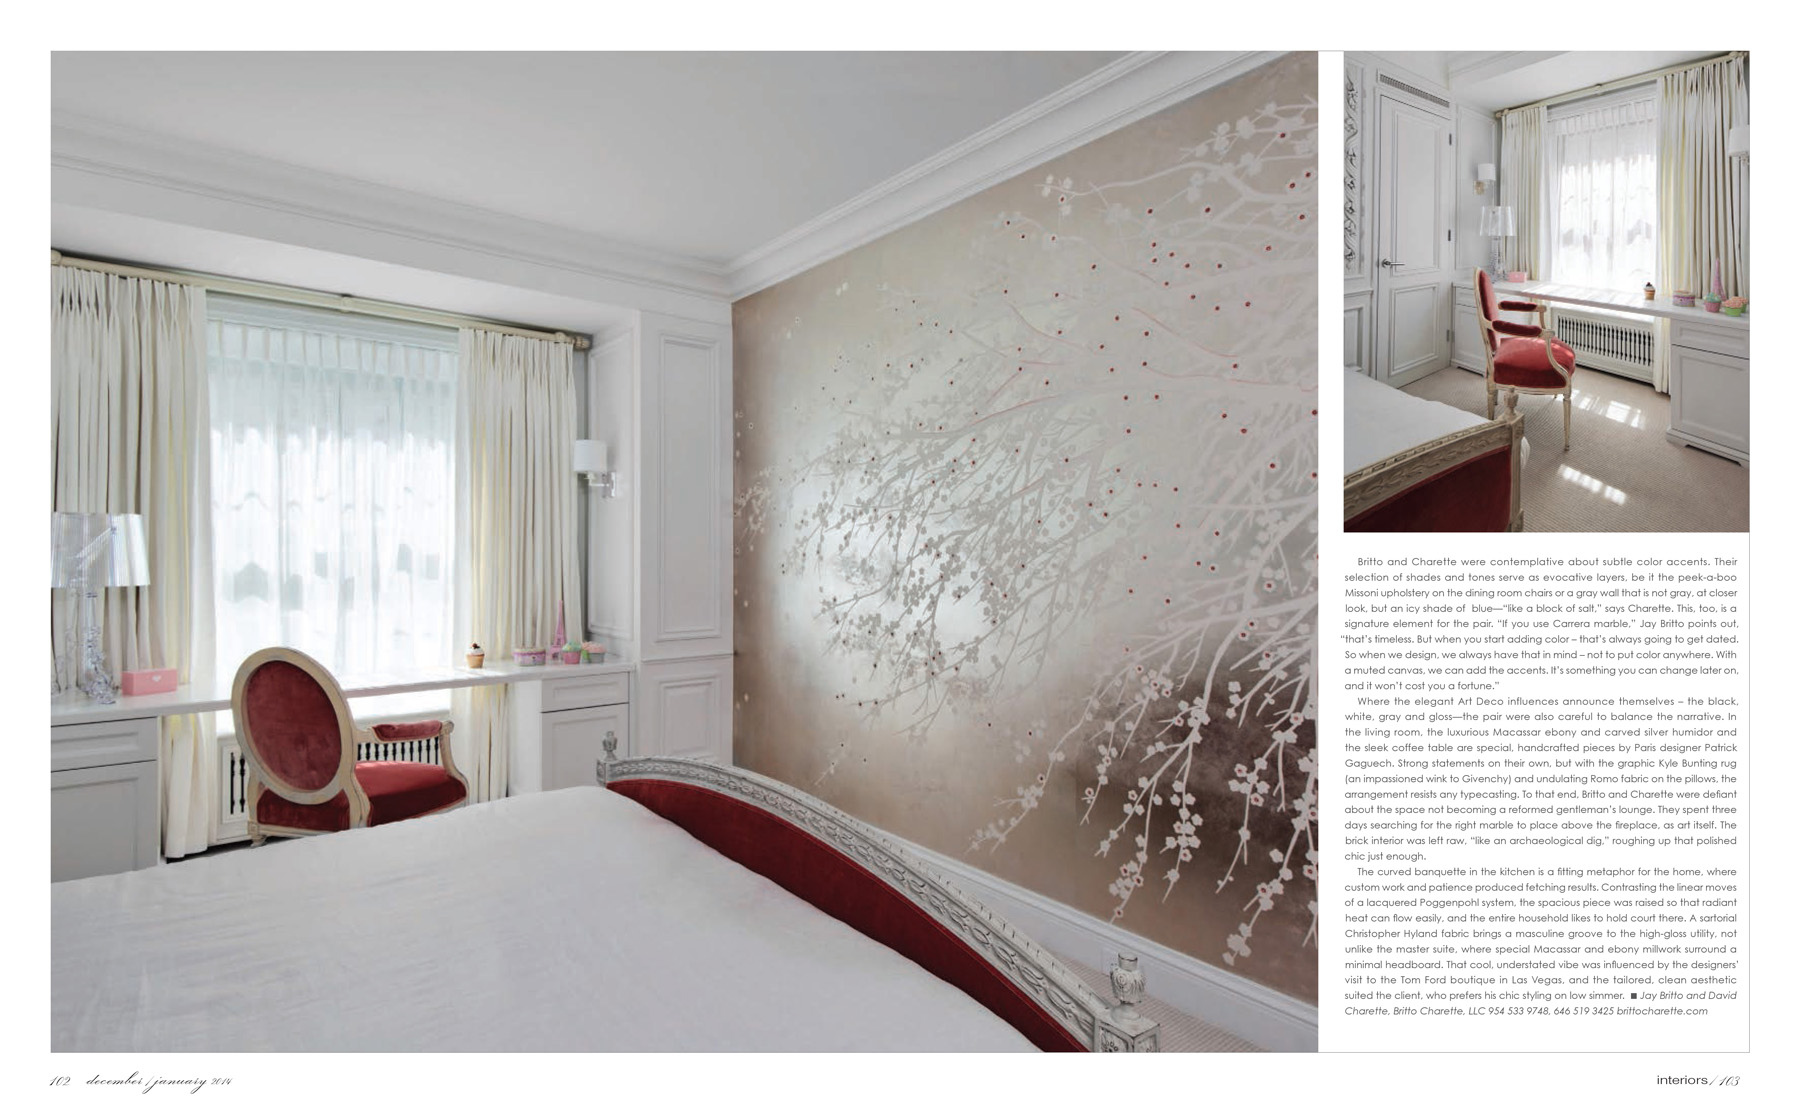 Montreal-Condo-Interiors-Magazine-December-2013-008